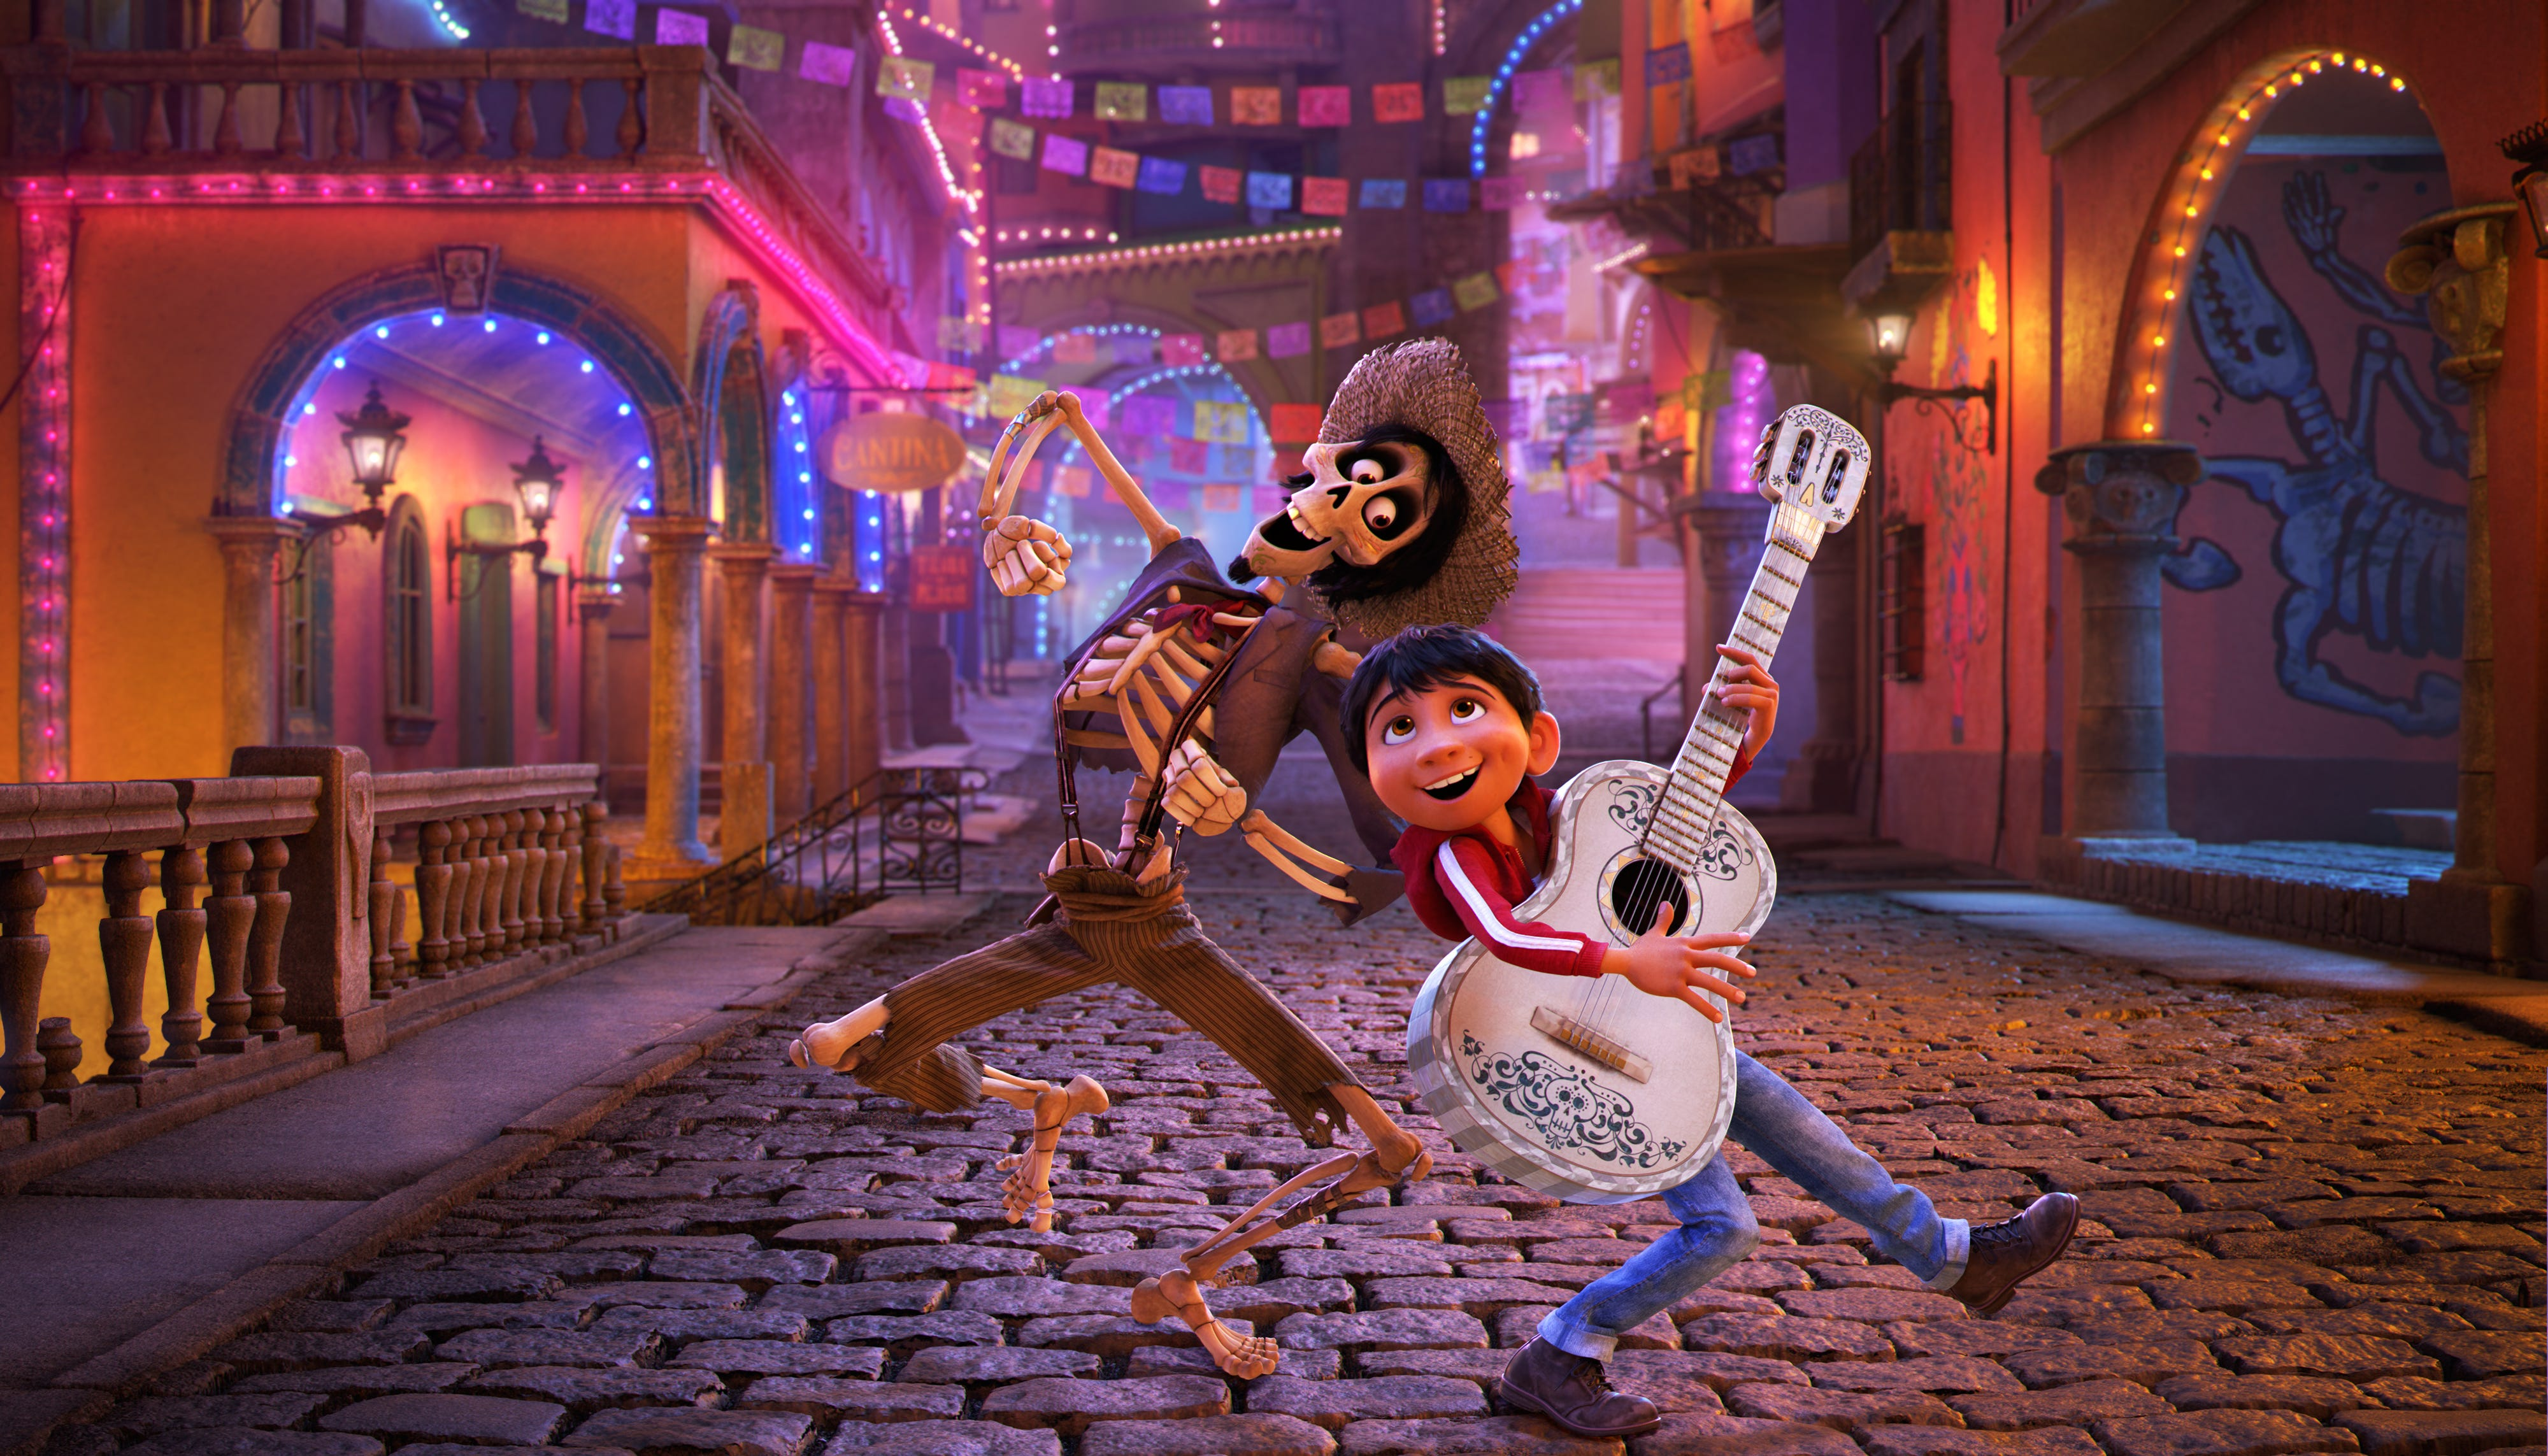 Pixar's 'Coco' tops 'Justice League' to win the Thanksgiving weekend box office